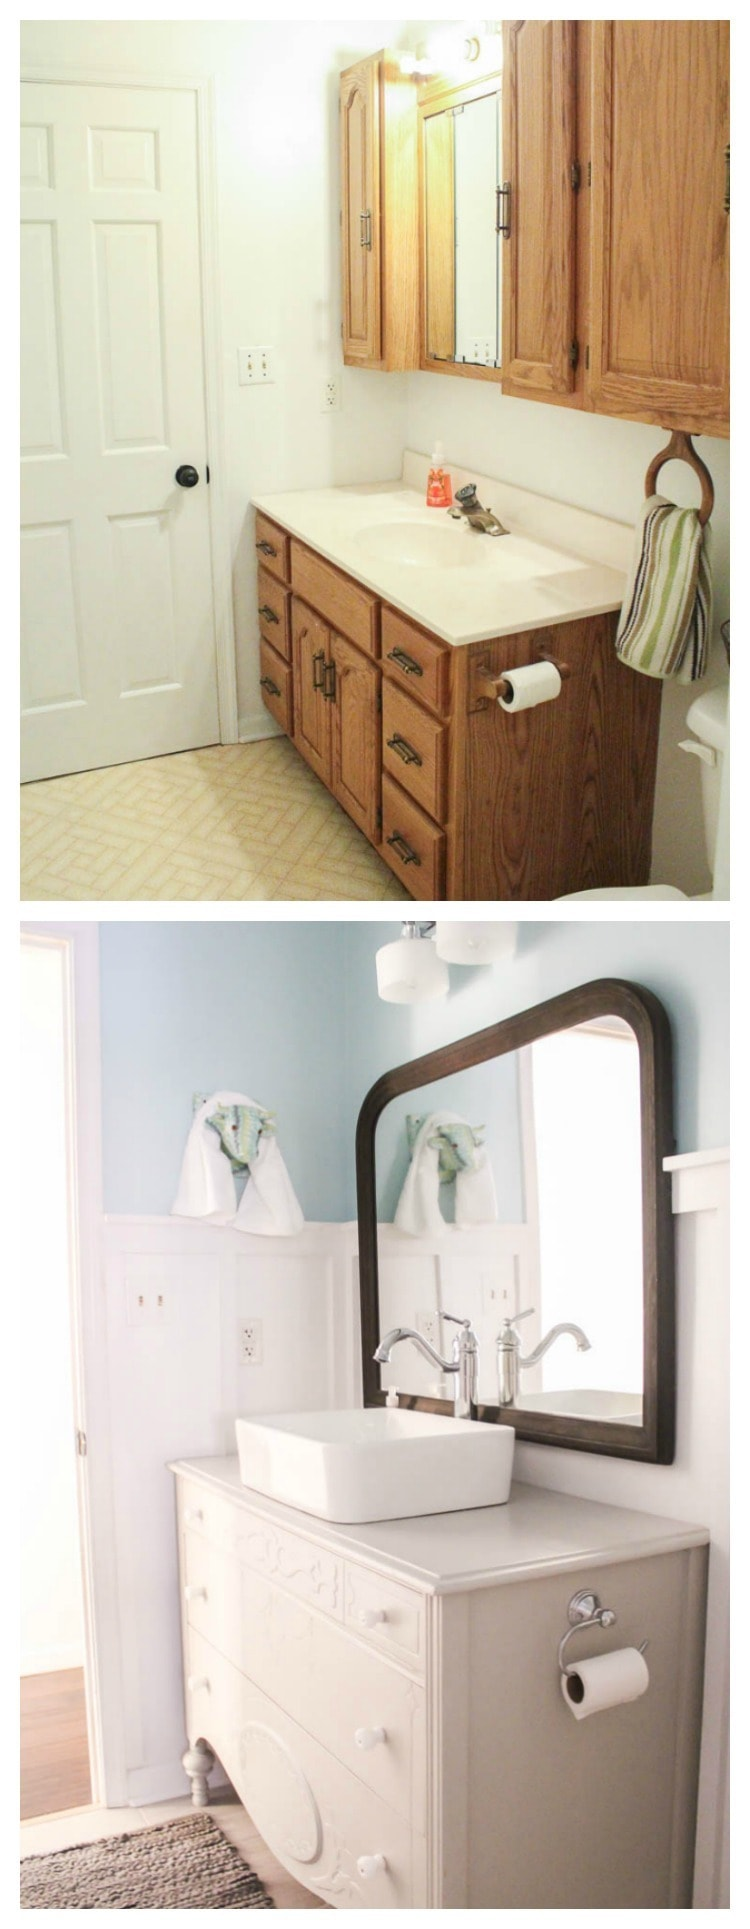 Diy Bathroom Remodel List modern farmhouse bathroom: the true final budget and source list